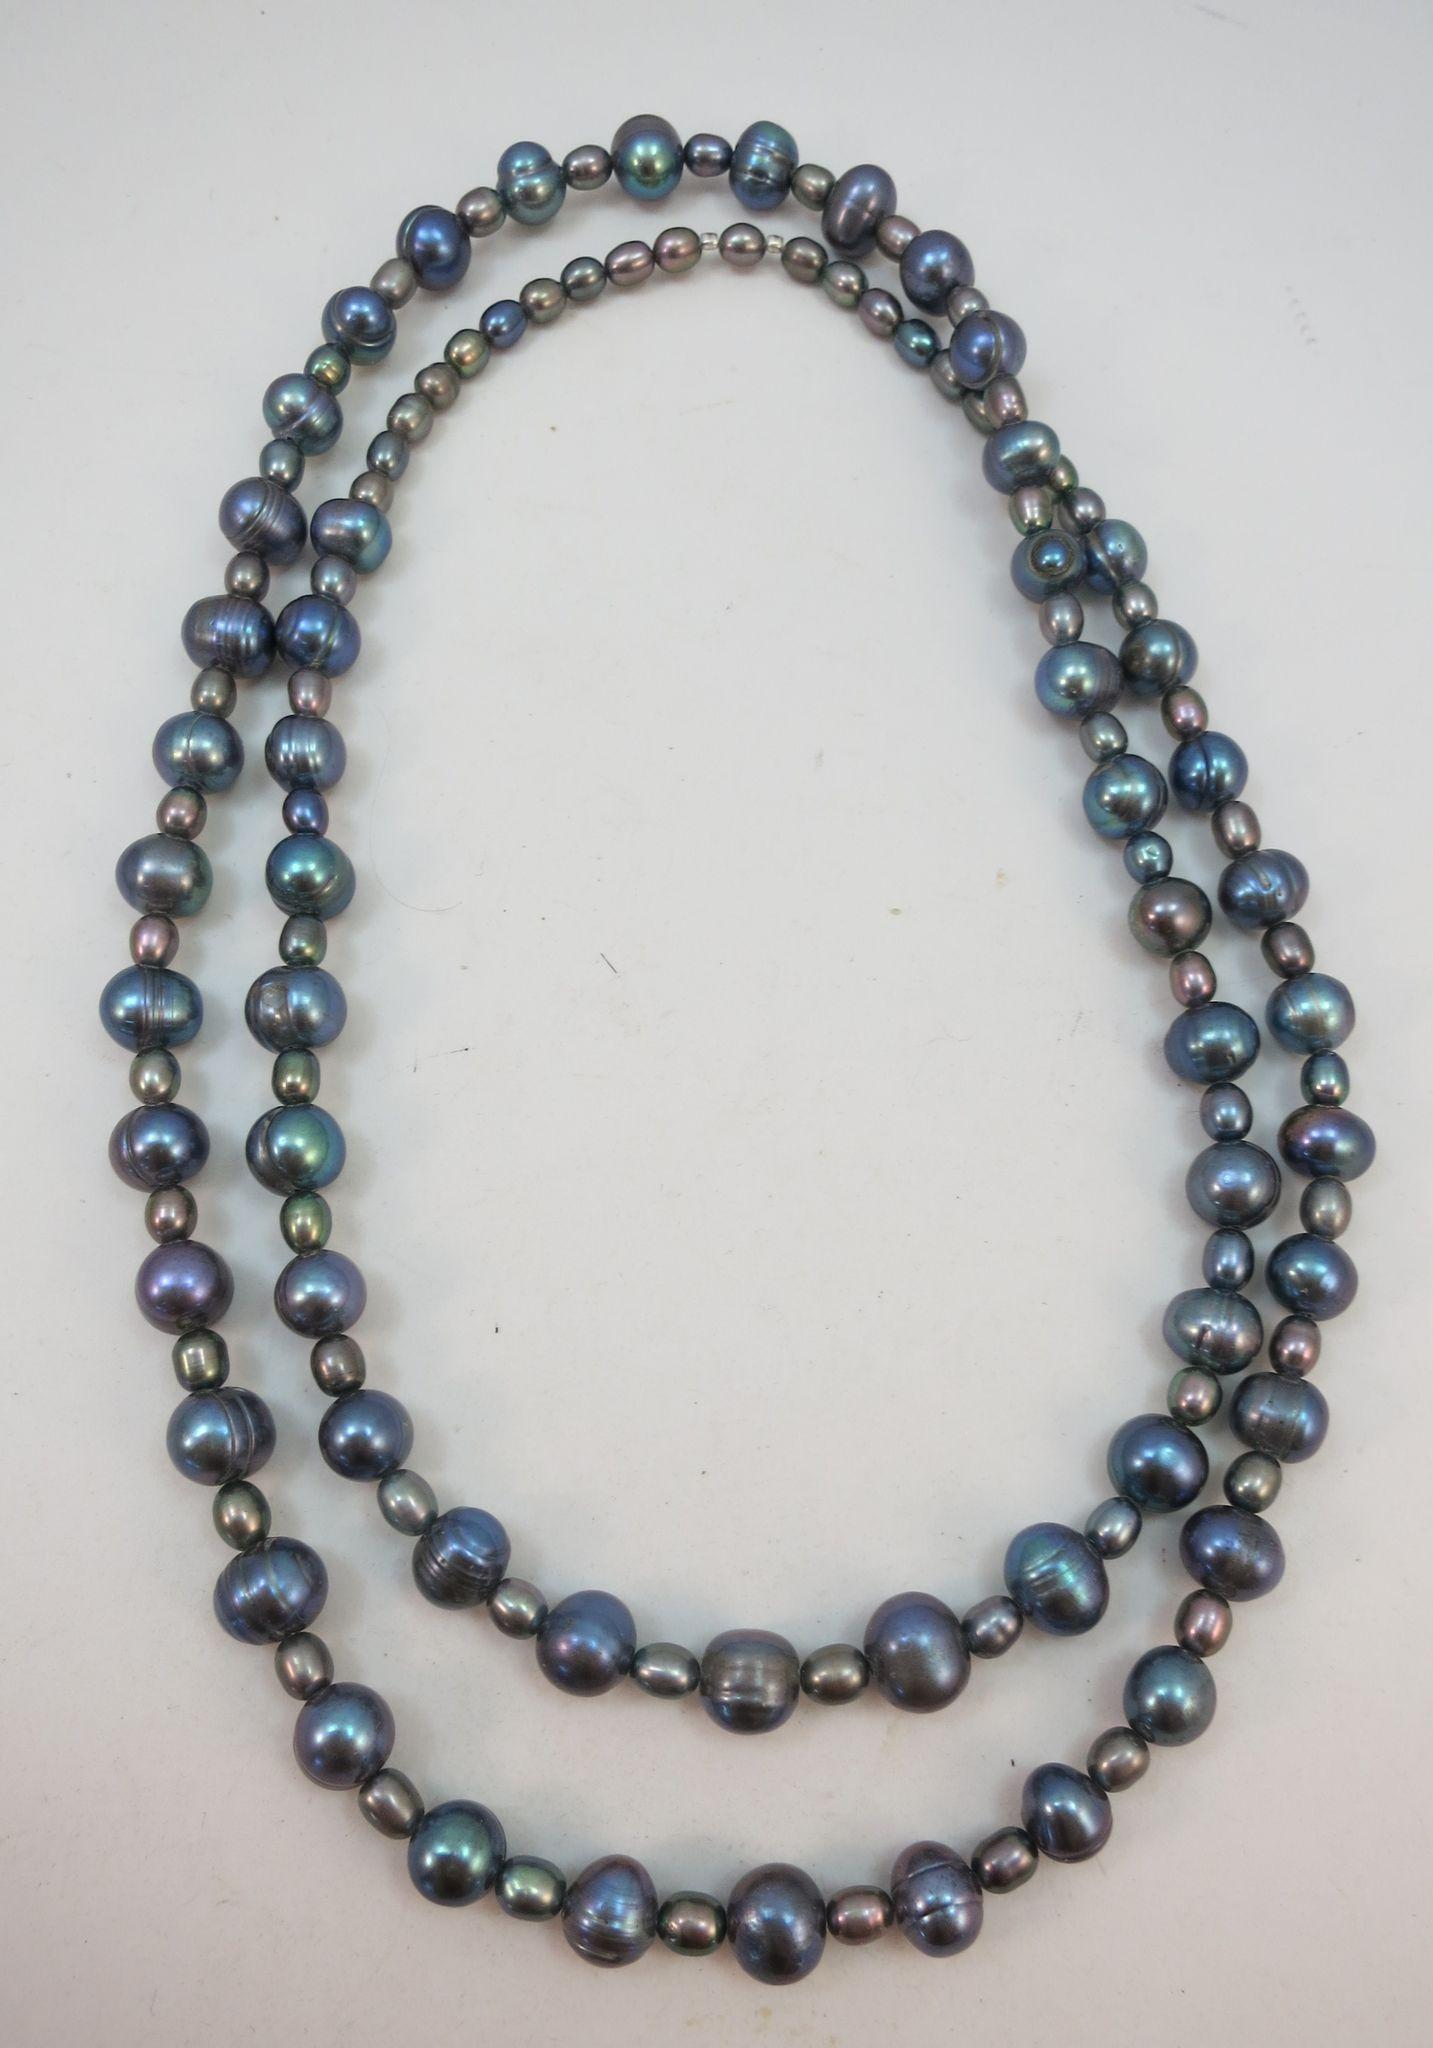 VINTAGE Endless String of Fresh-Water Pearls  Purplish  28 Inches